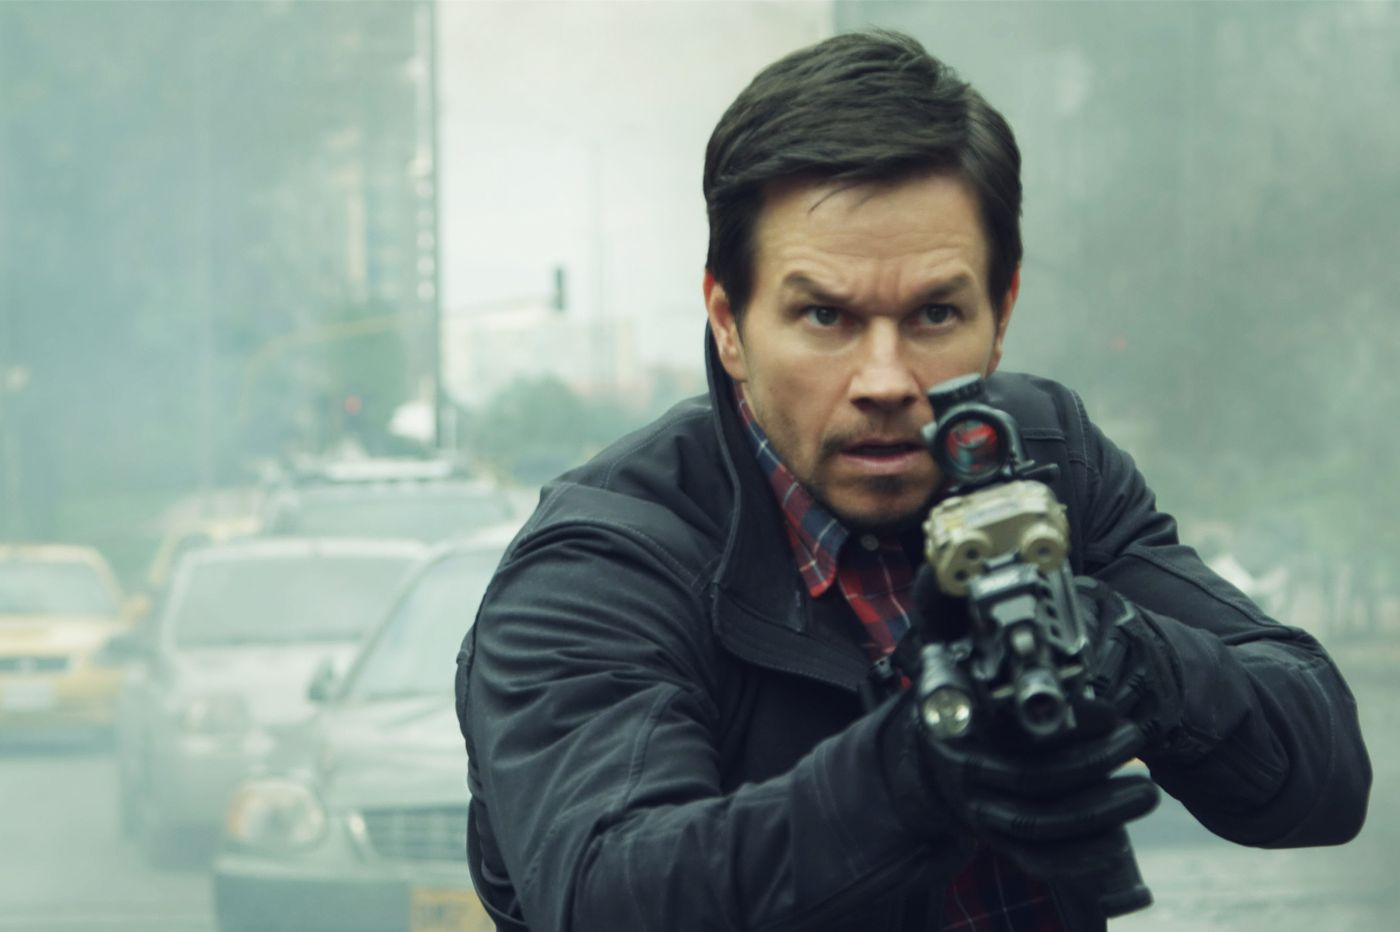 'Mile 22': Mark Wahlberg is a dud, while the ladies rule in new action flick